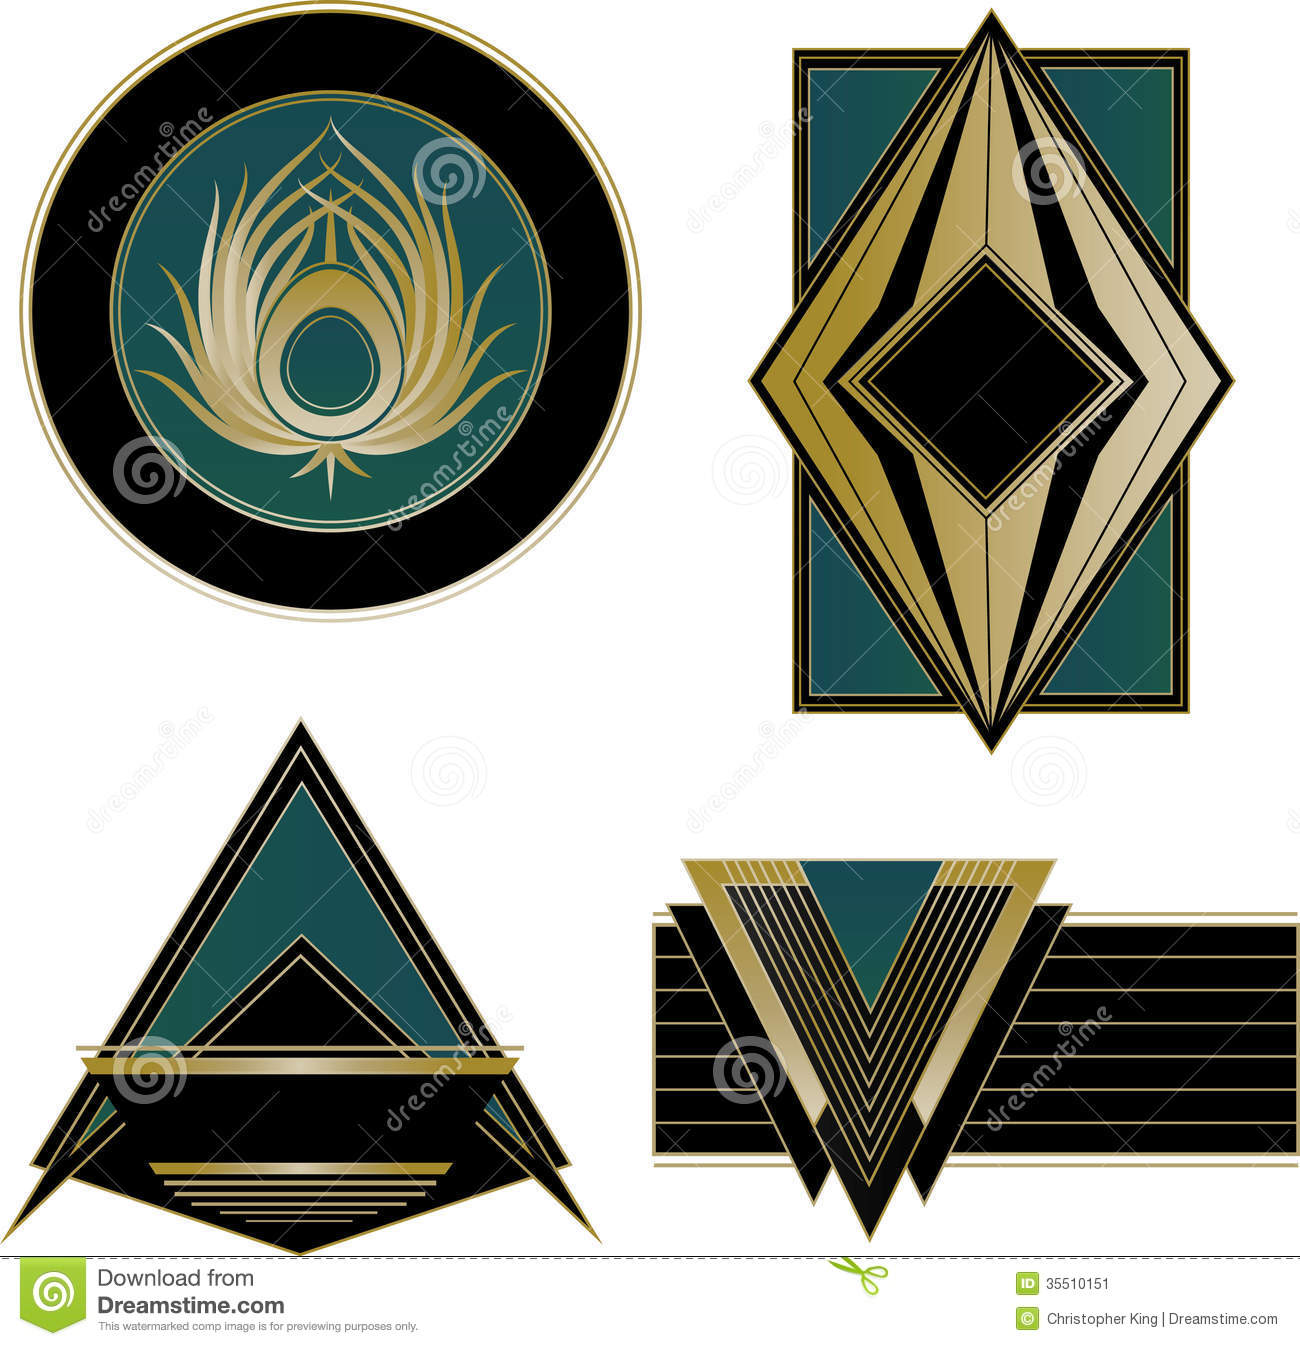 Art Deco Design Elements art deco logos and design elements royalty free stock photography